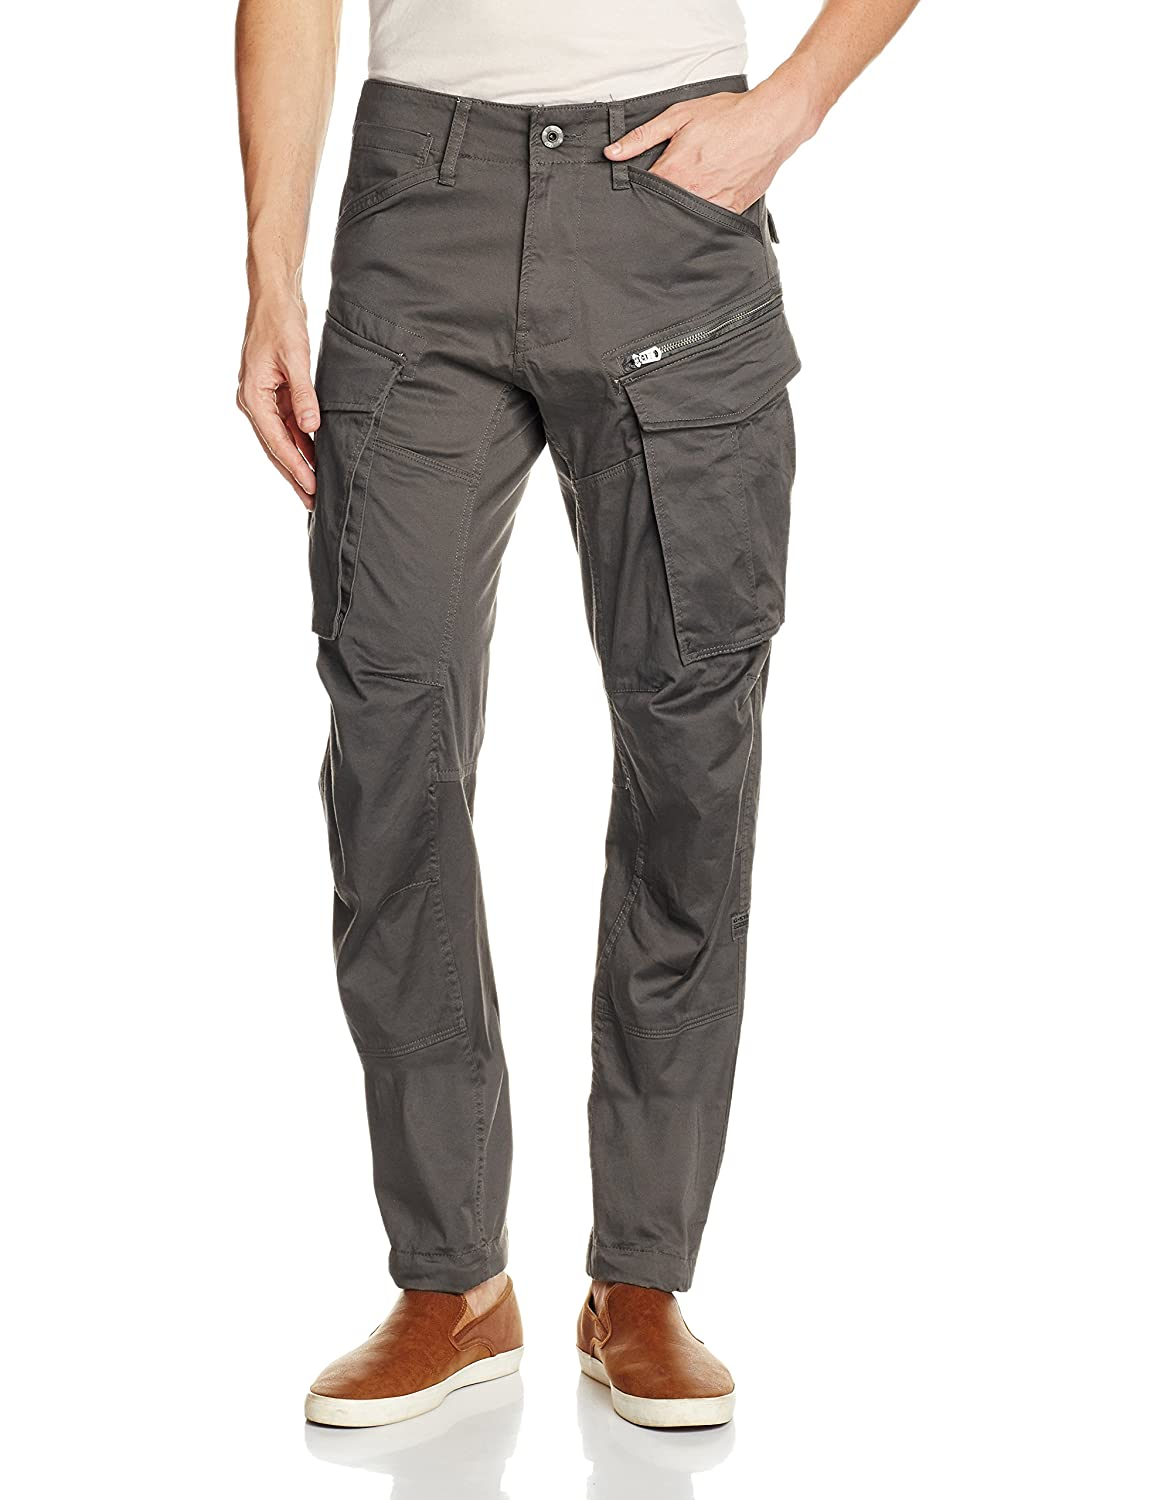 G-STAR RAW Men's Trousers G-STAR RAW Men' s Trousers D02190-5126-1260